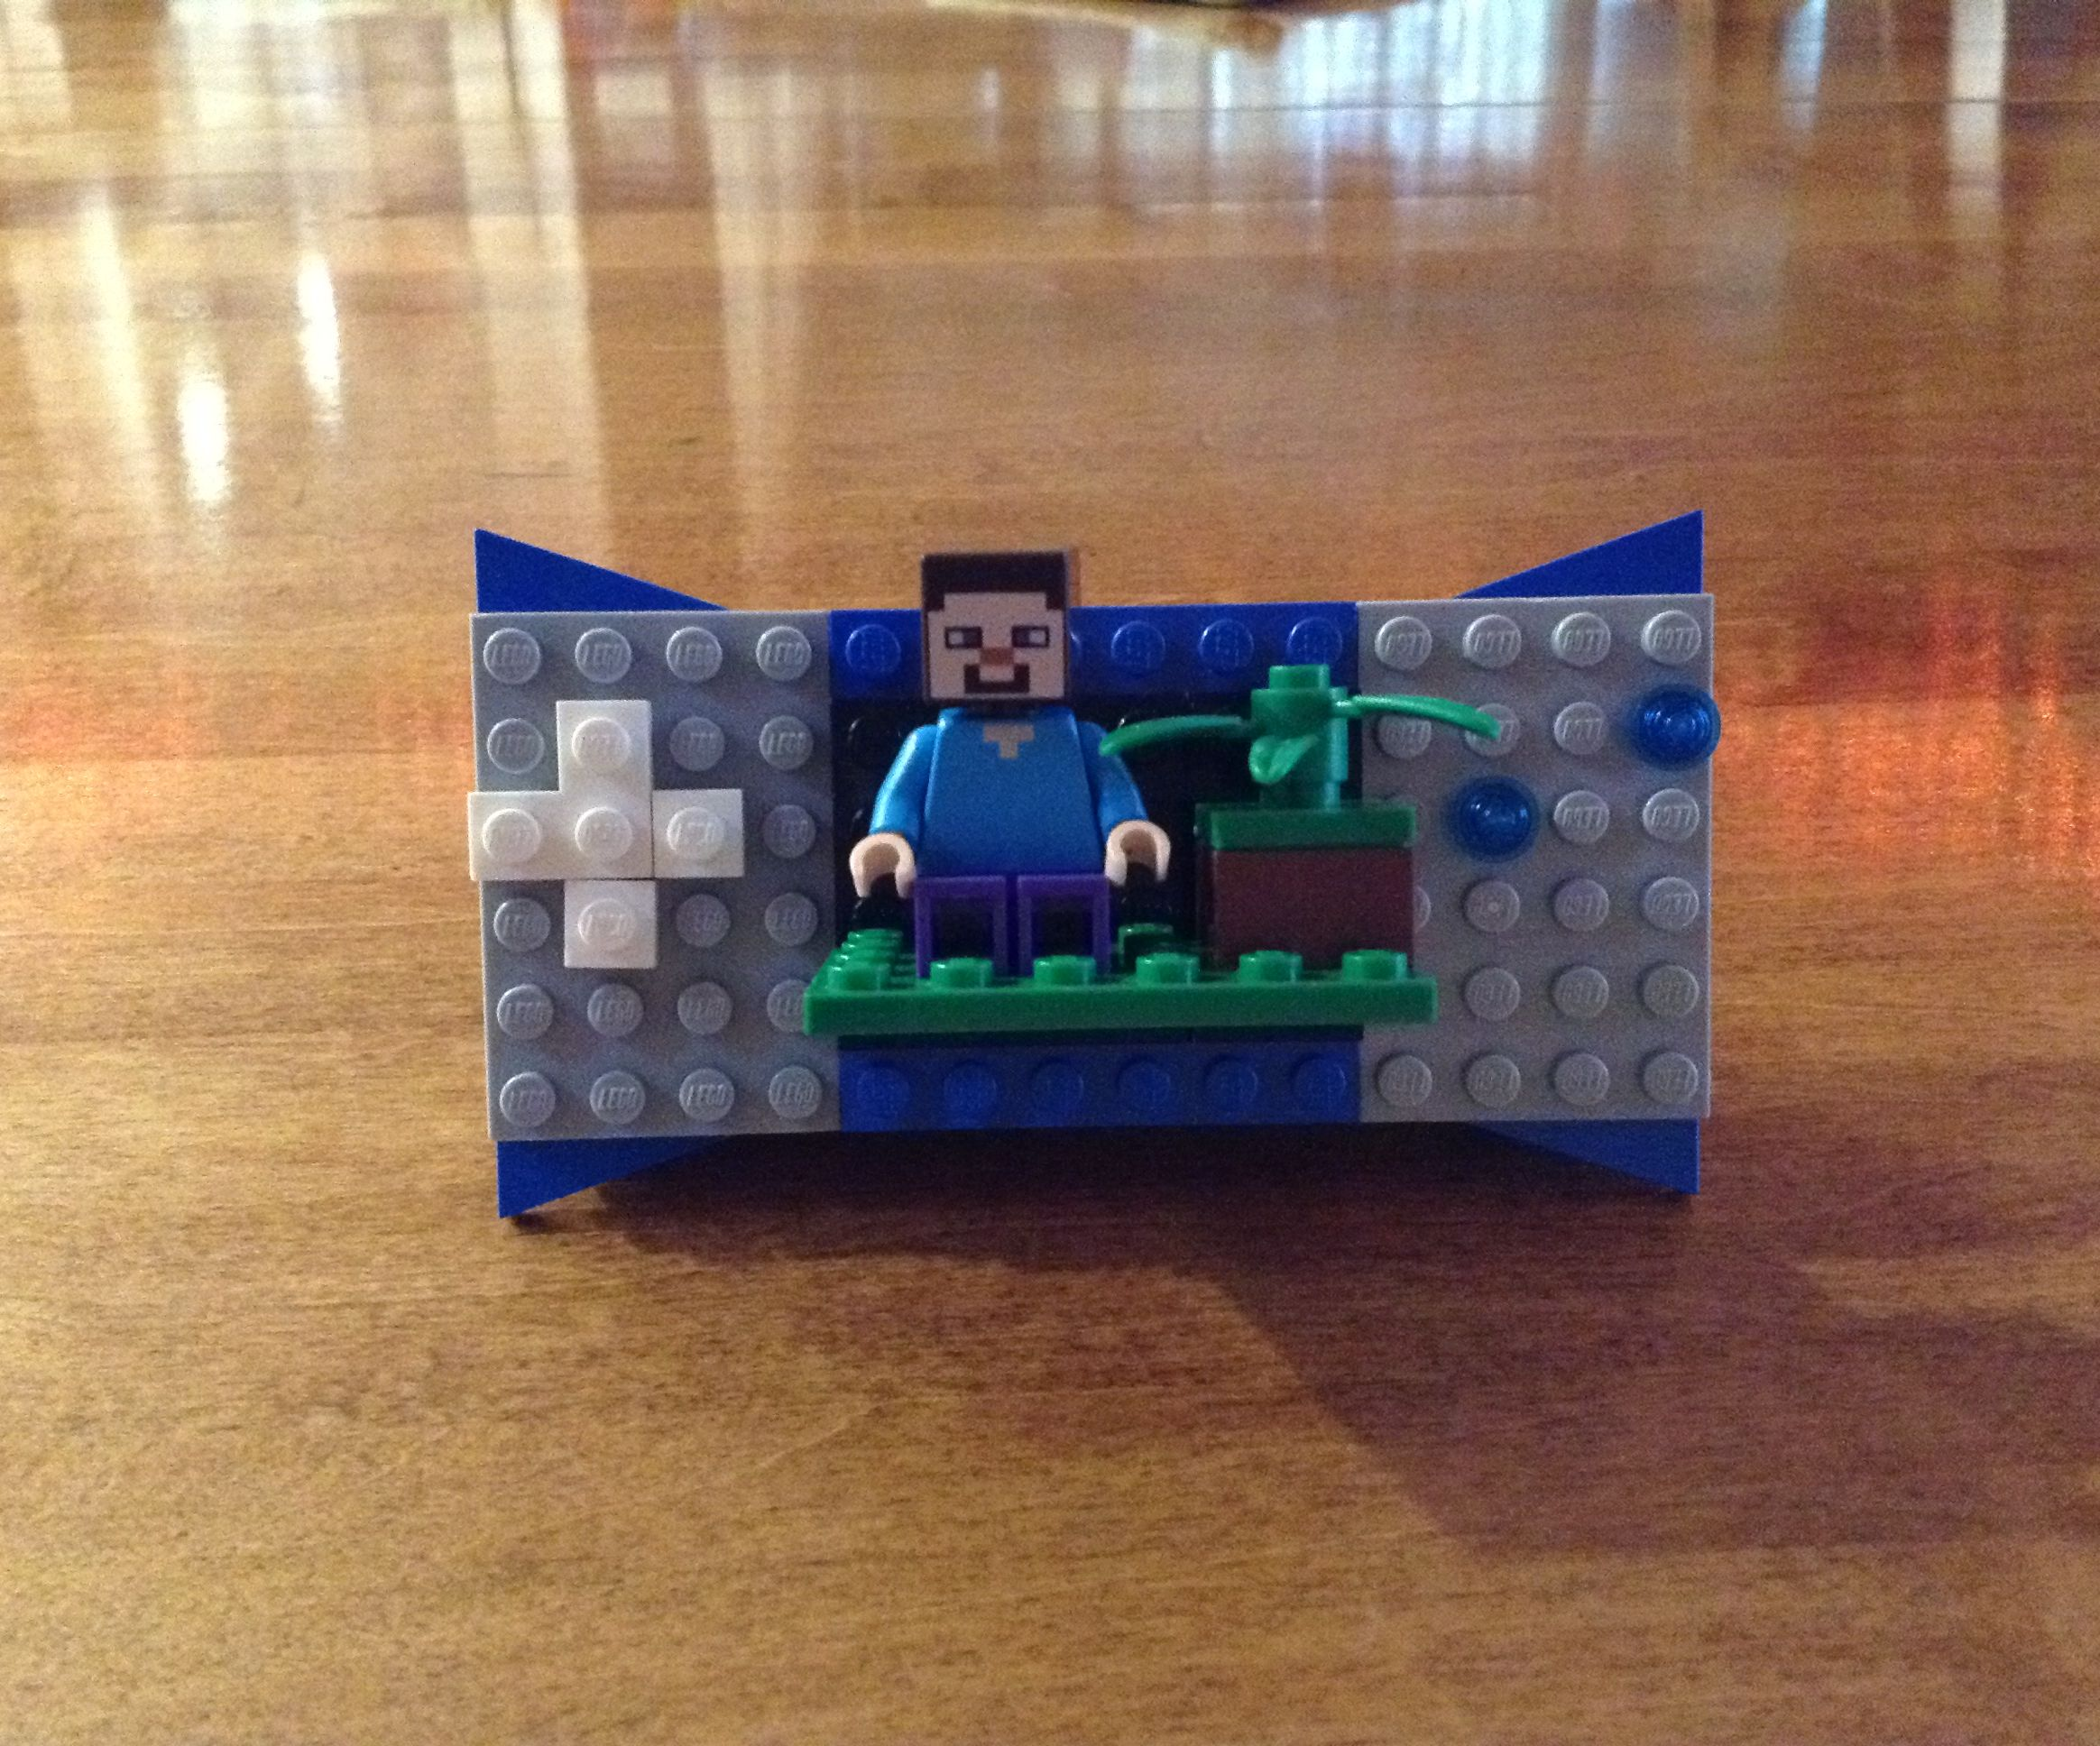 How to Make a Lego Game System Replica Look 3D!